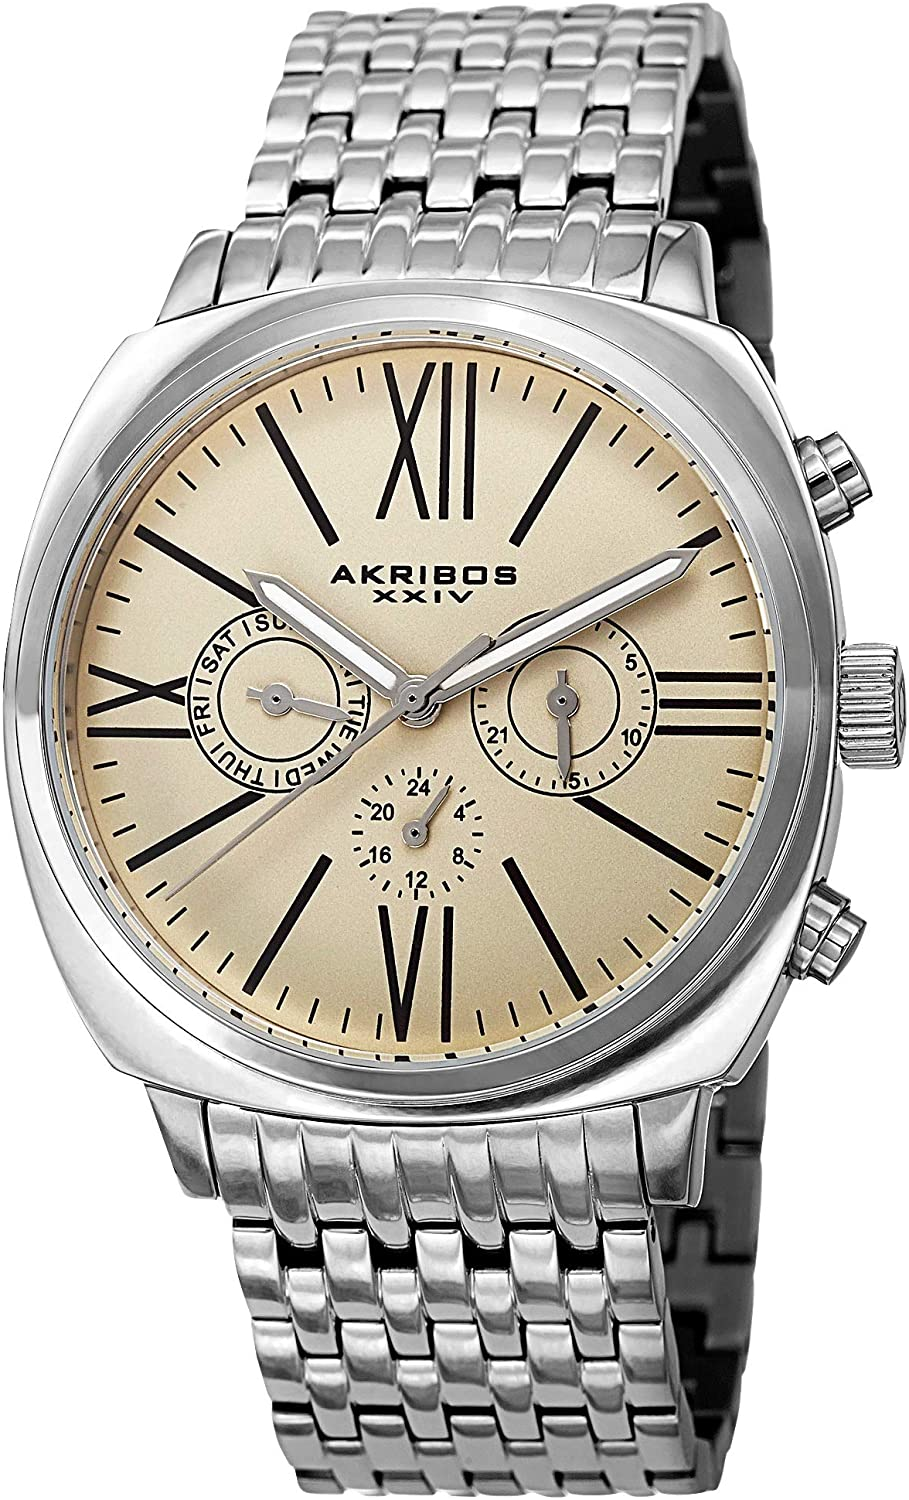 Akribos XXIV Men's Retro Swiss Multifunction Watch - 3 Subdials Day, Date and GMT On Stainless Steel Pillow-Cut Bracelet - AK636